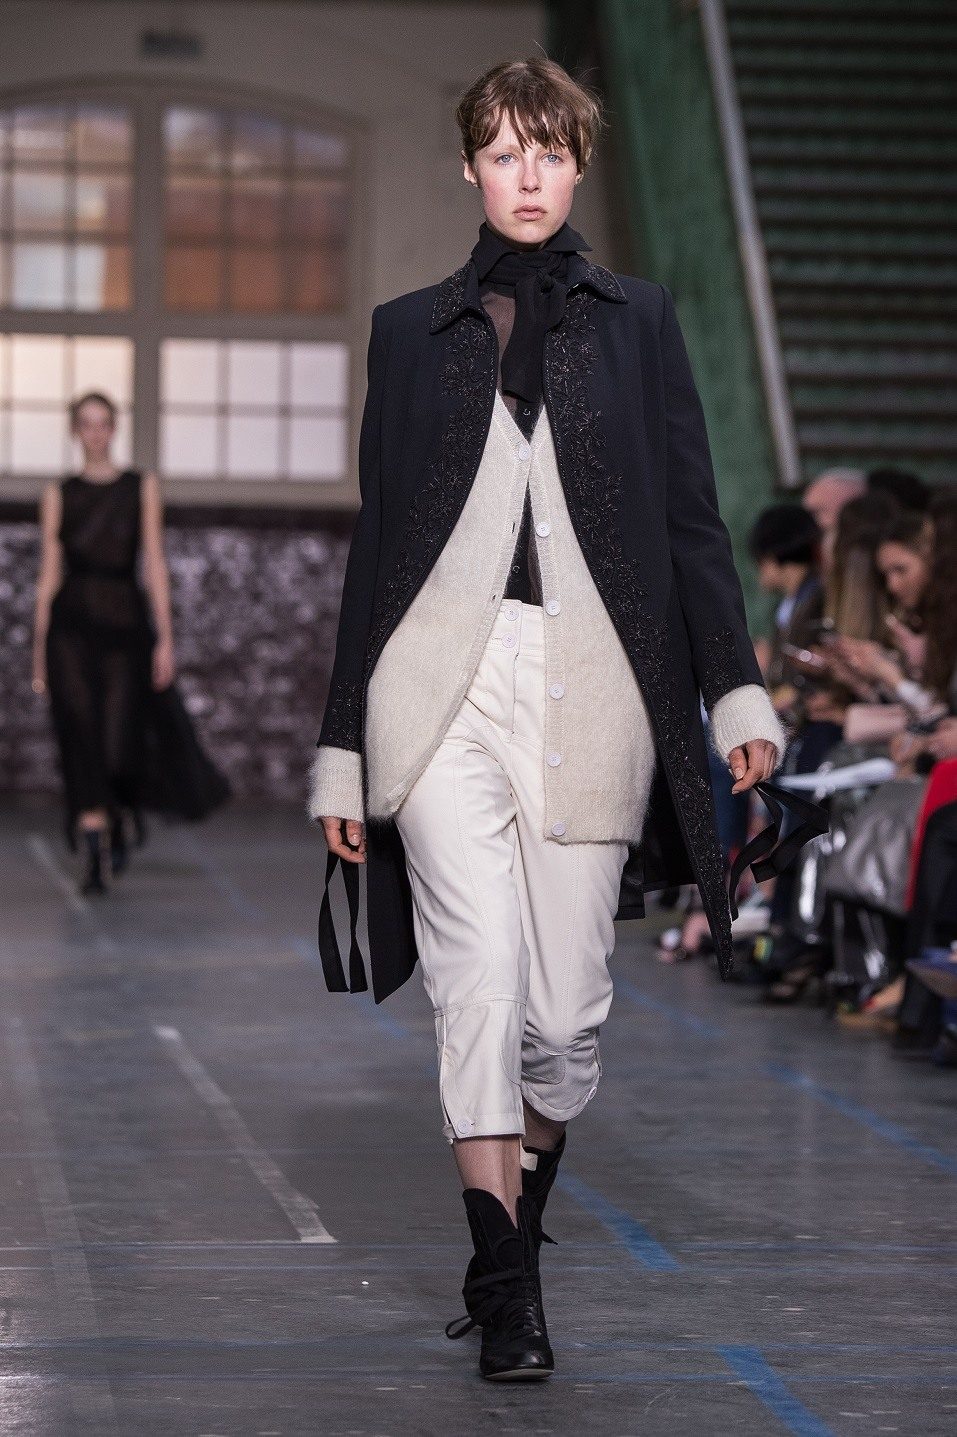 Model Edie Campbell walks the runway during the John Galliano show as part of the Paris Fashion Week